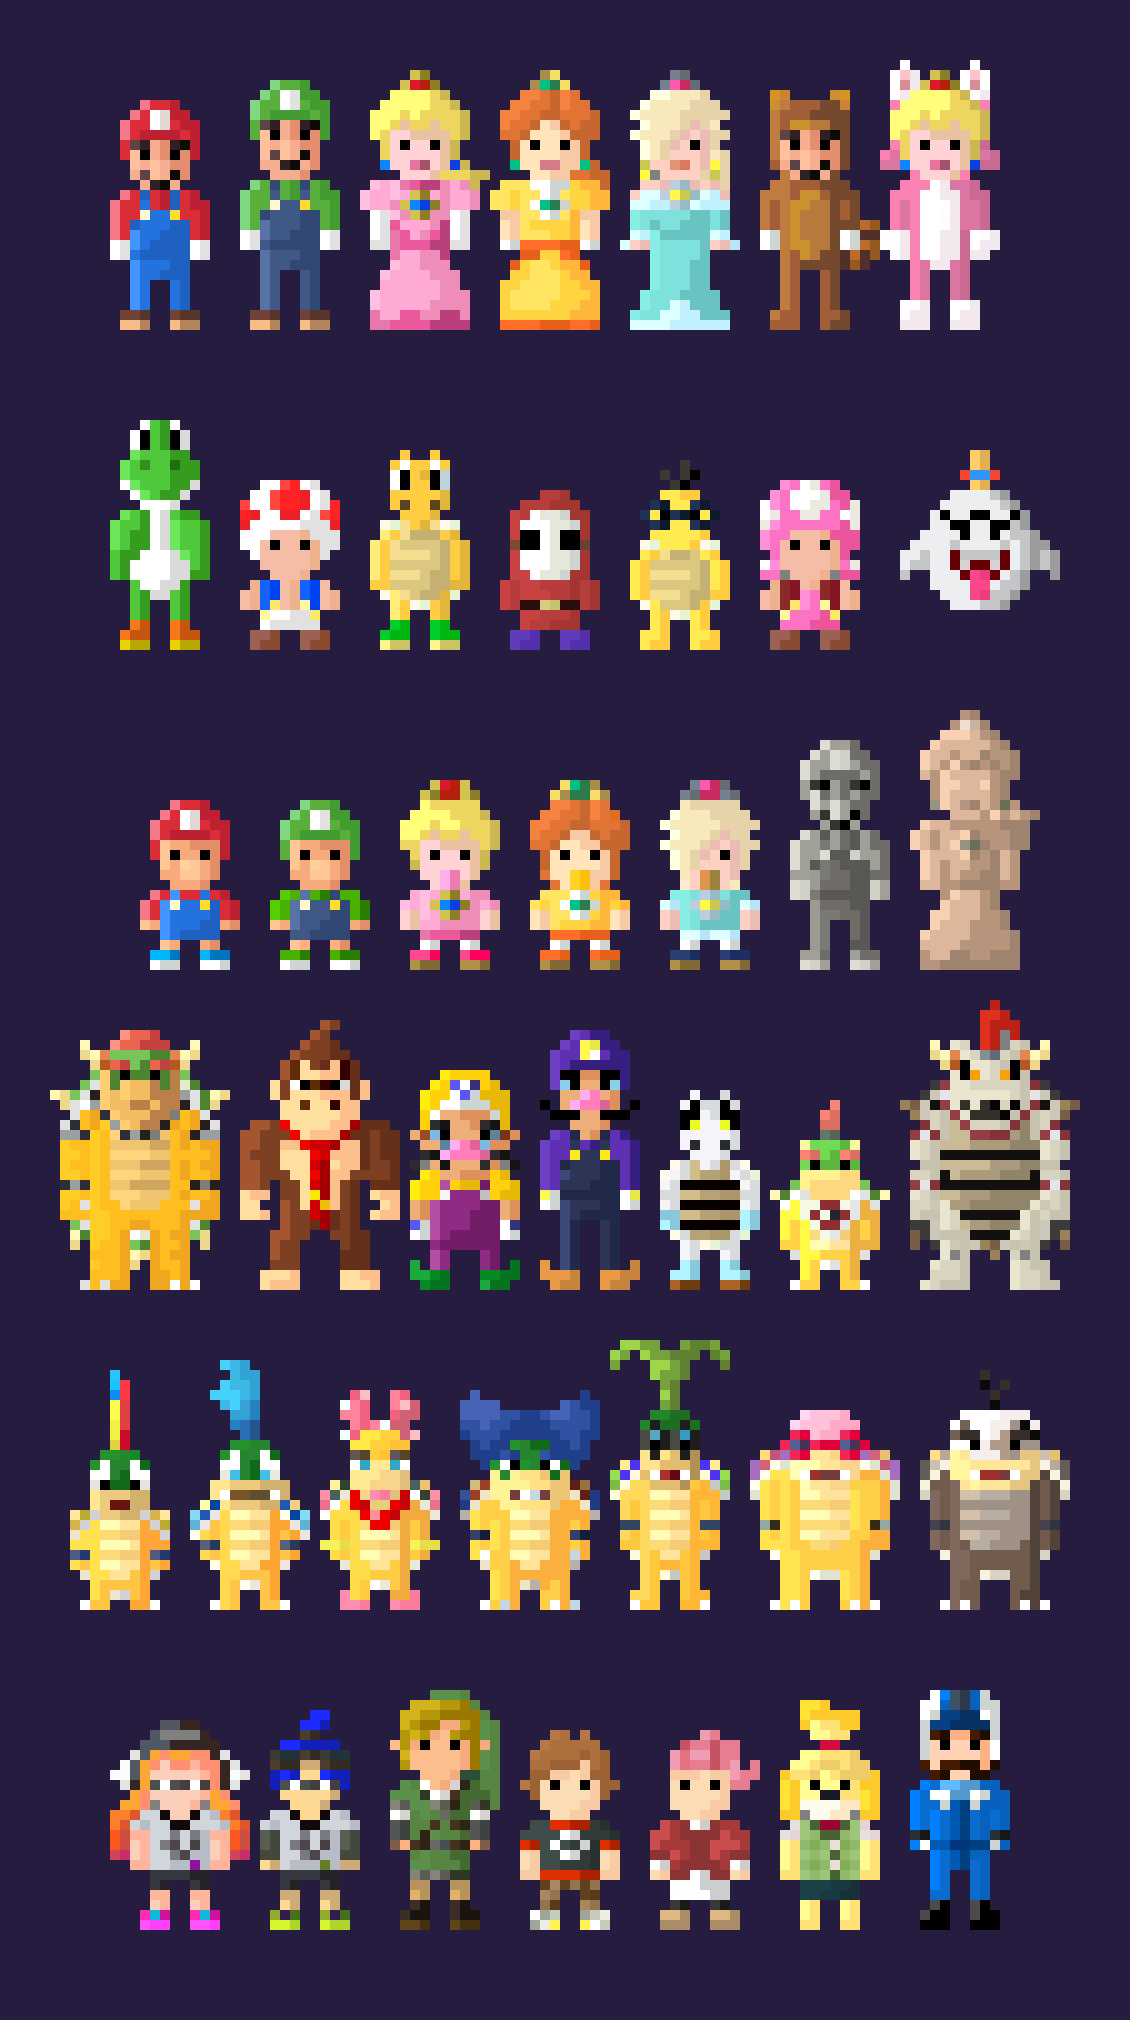 Mario Kart 8 Deluxe Characters 8 Bit By Lustriouscharming On